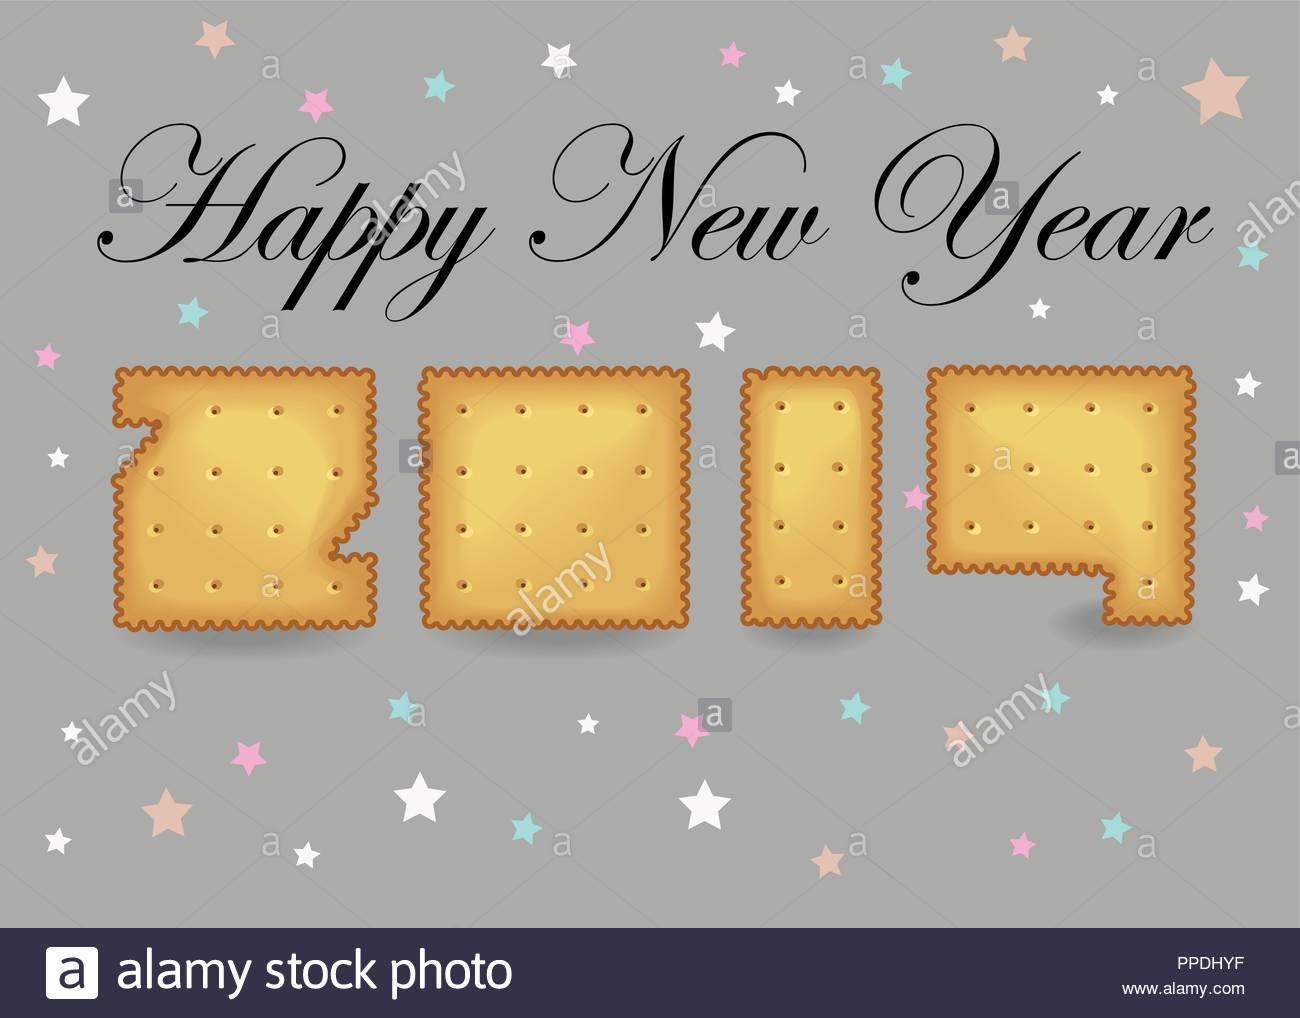 happy new year 2019 artistic yellow number as cracker cookies gray background with colorful stars black text vector illustration